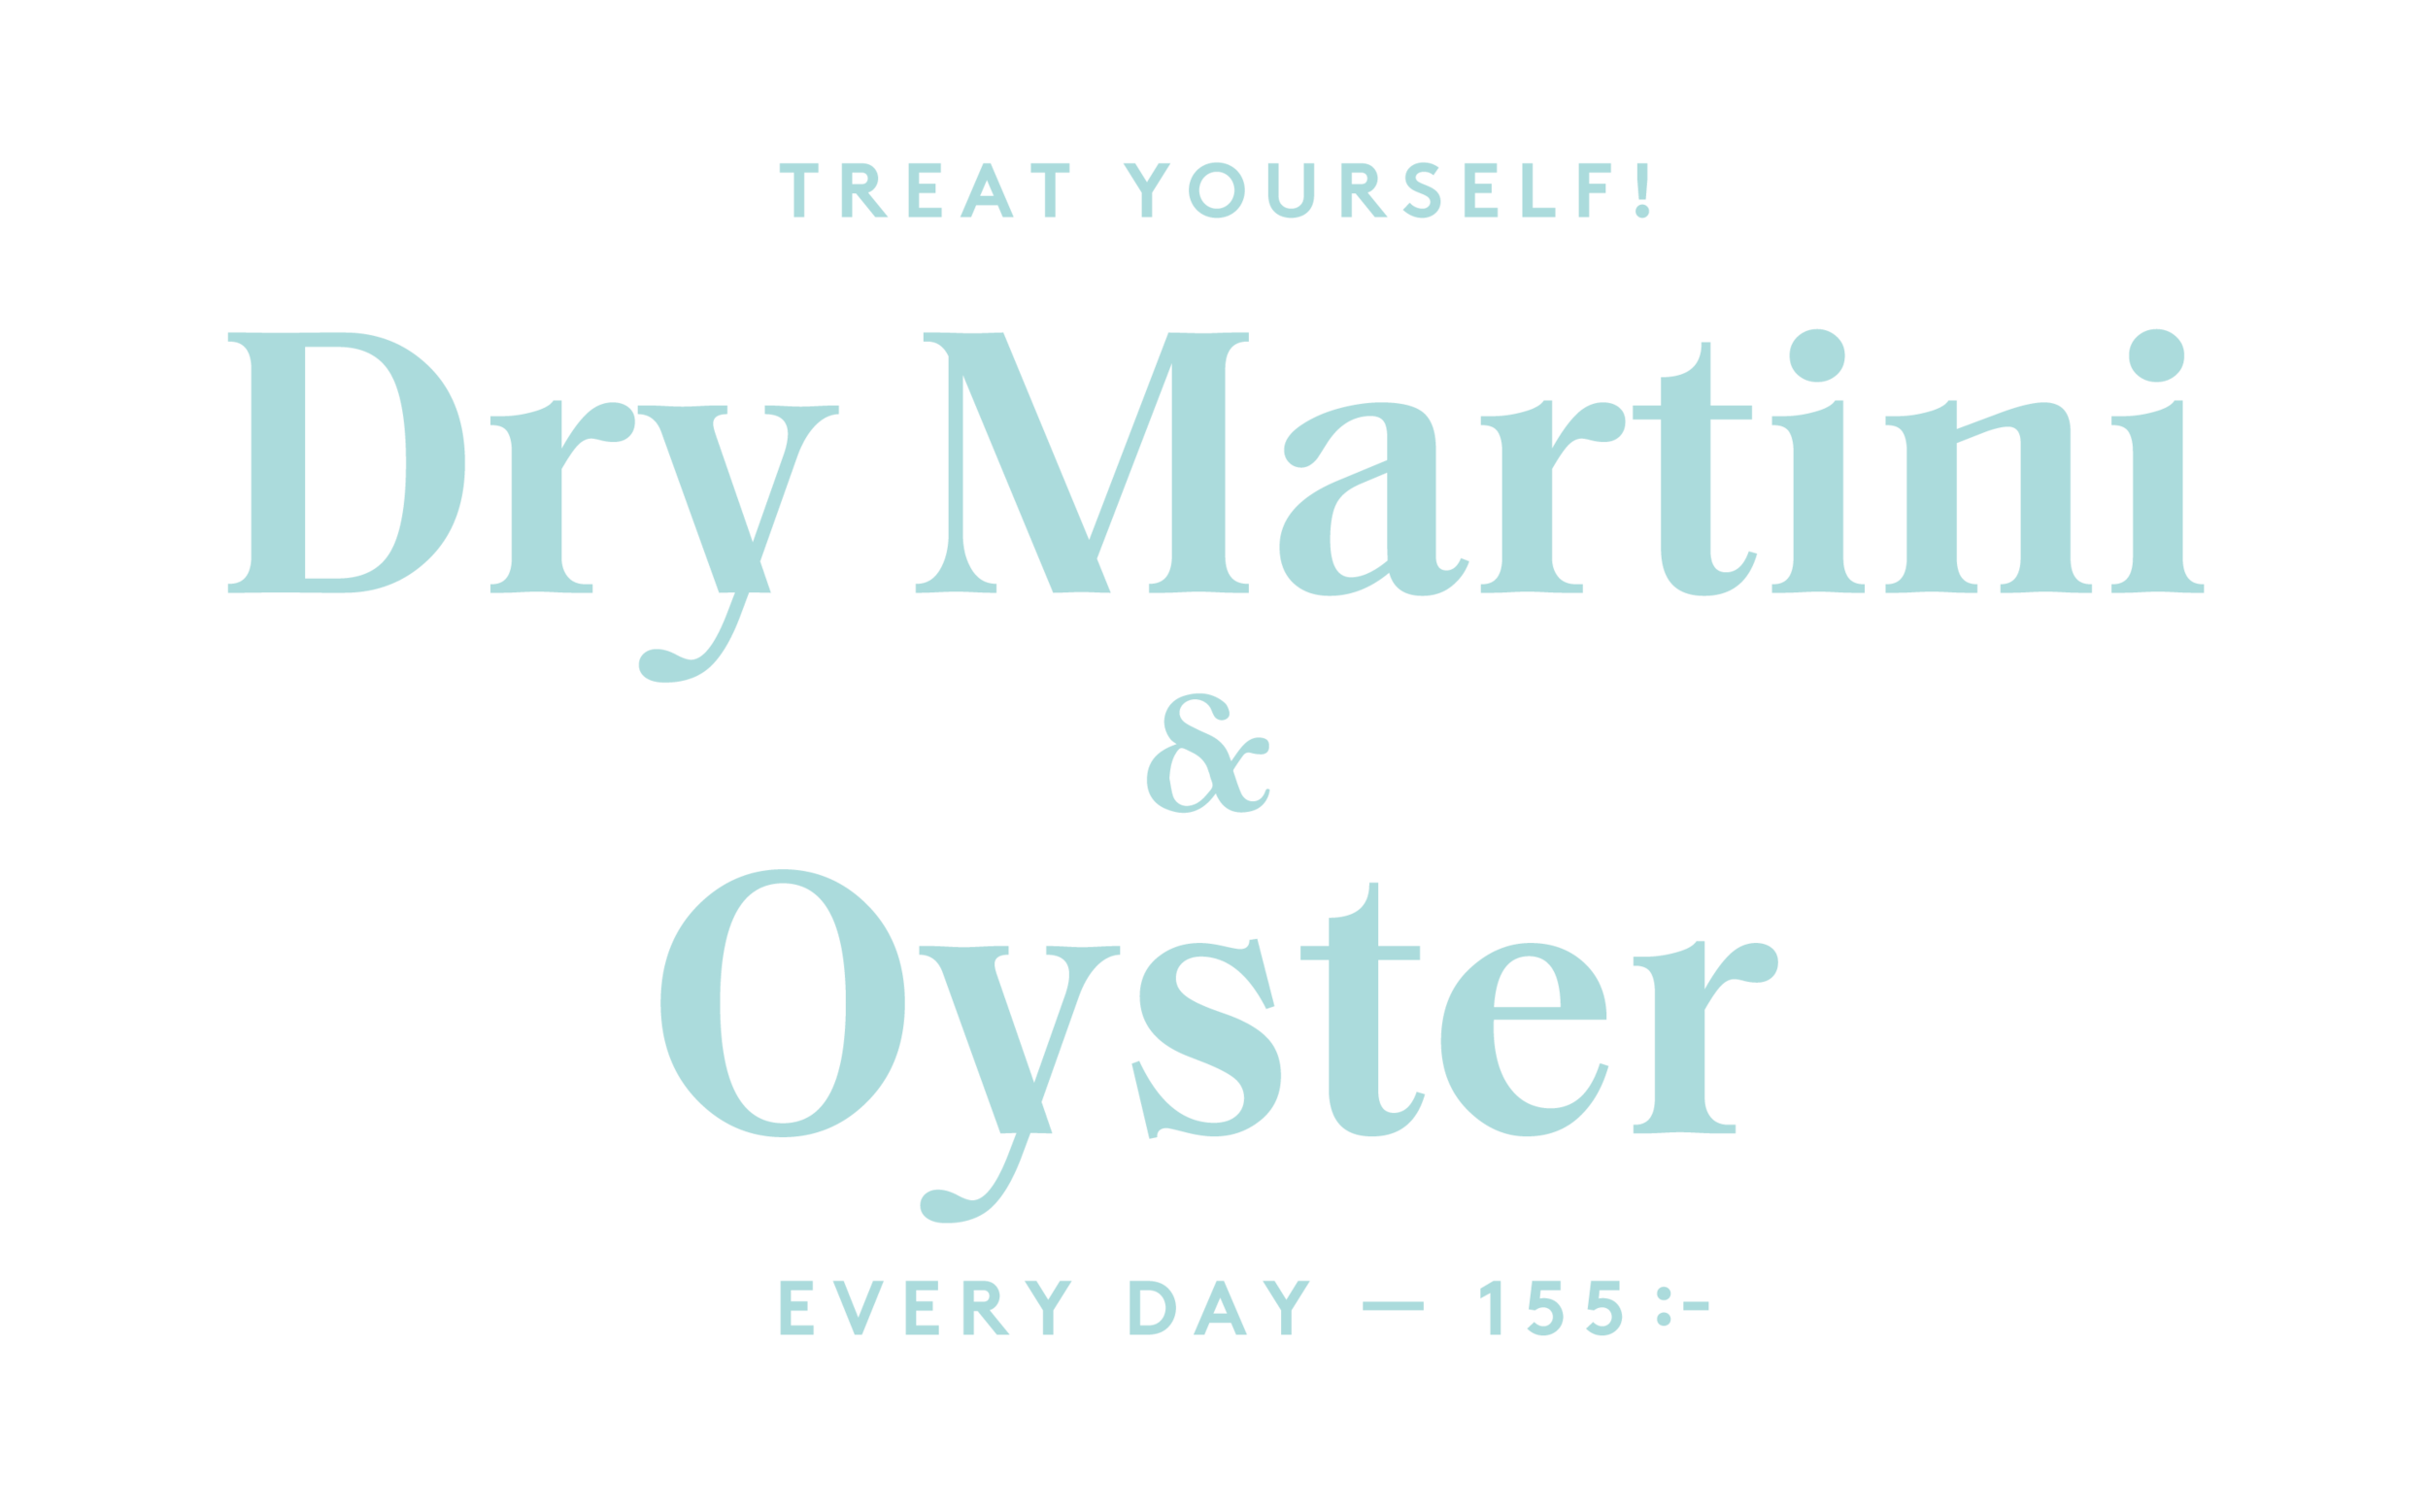 Offer-Dry-martini-oyster-.png